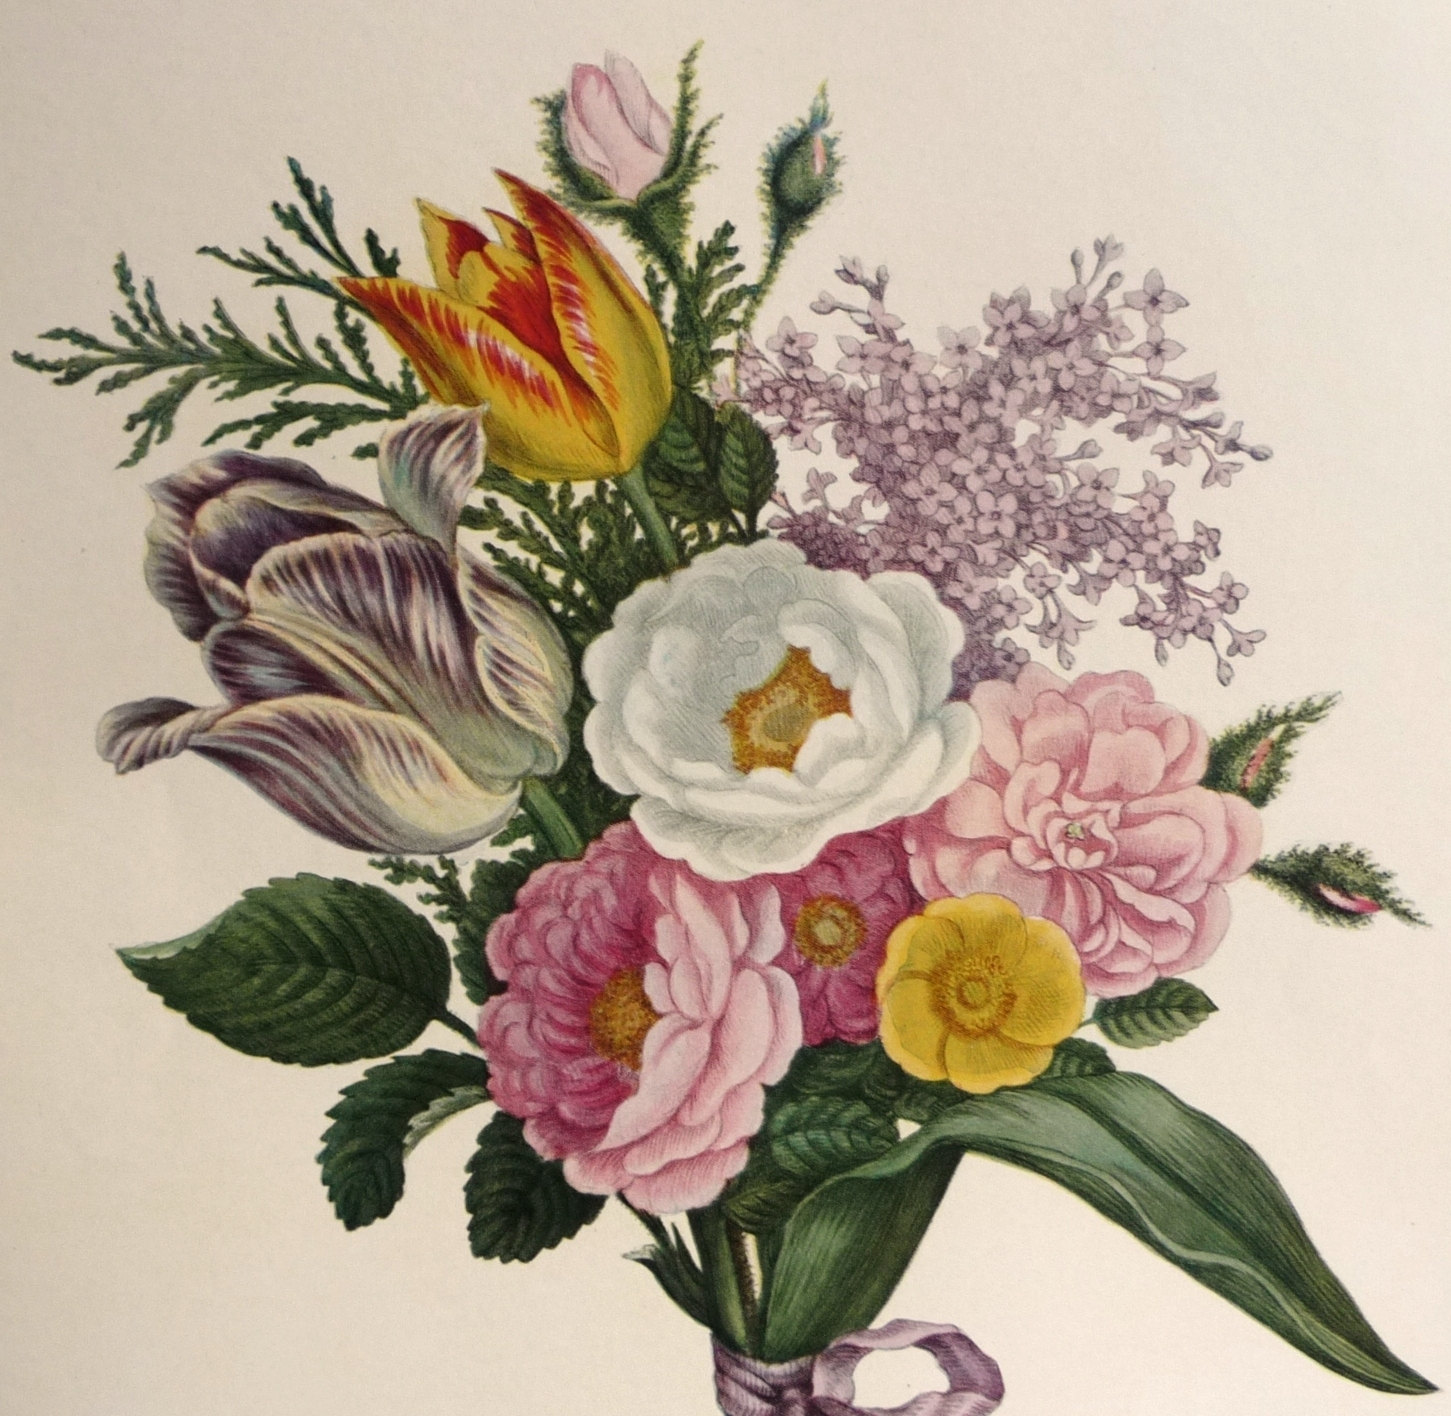 Drawn vintage flower bouquet More Botanical this and Illustration